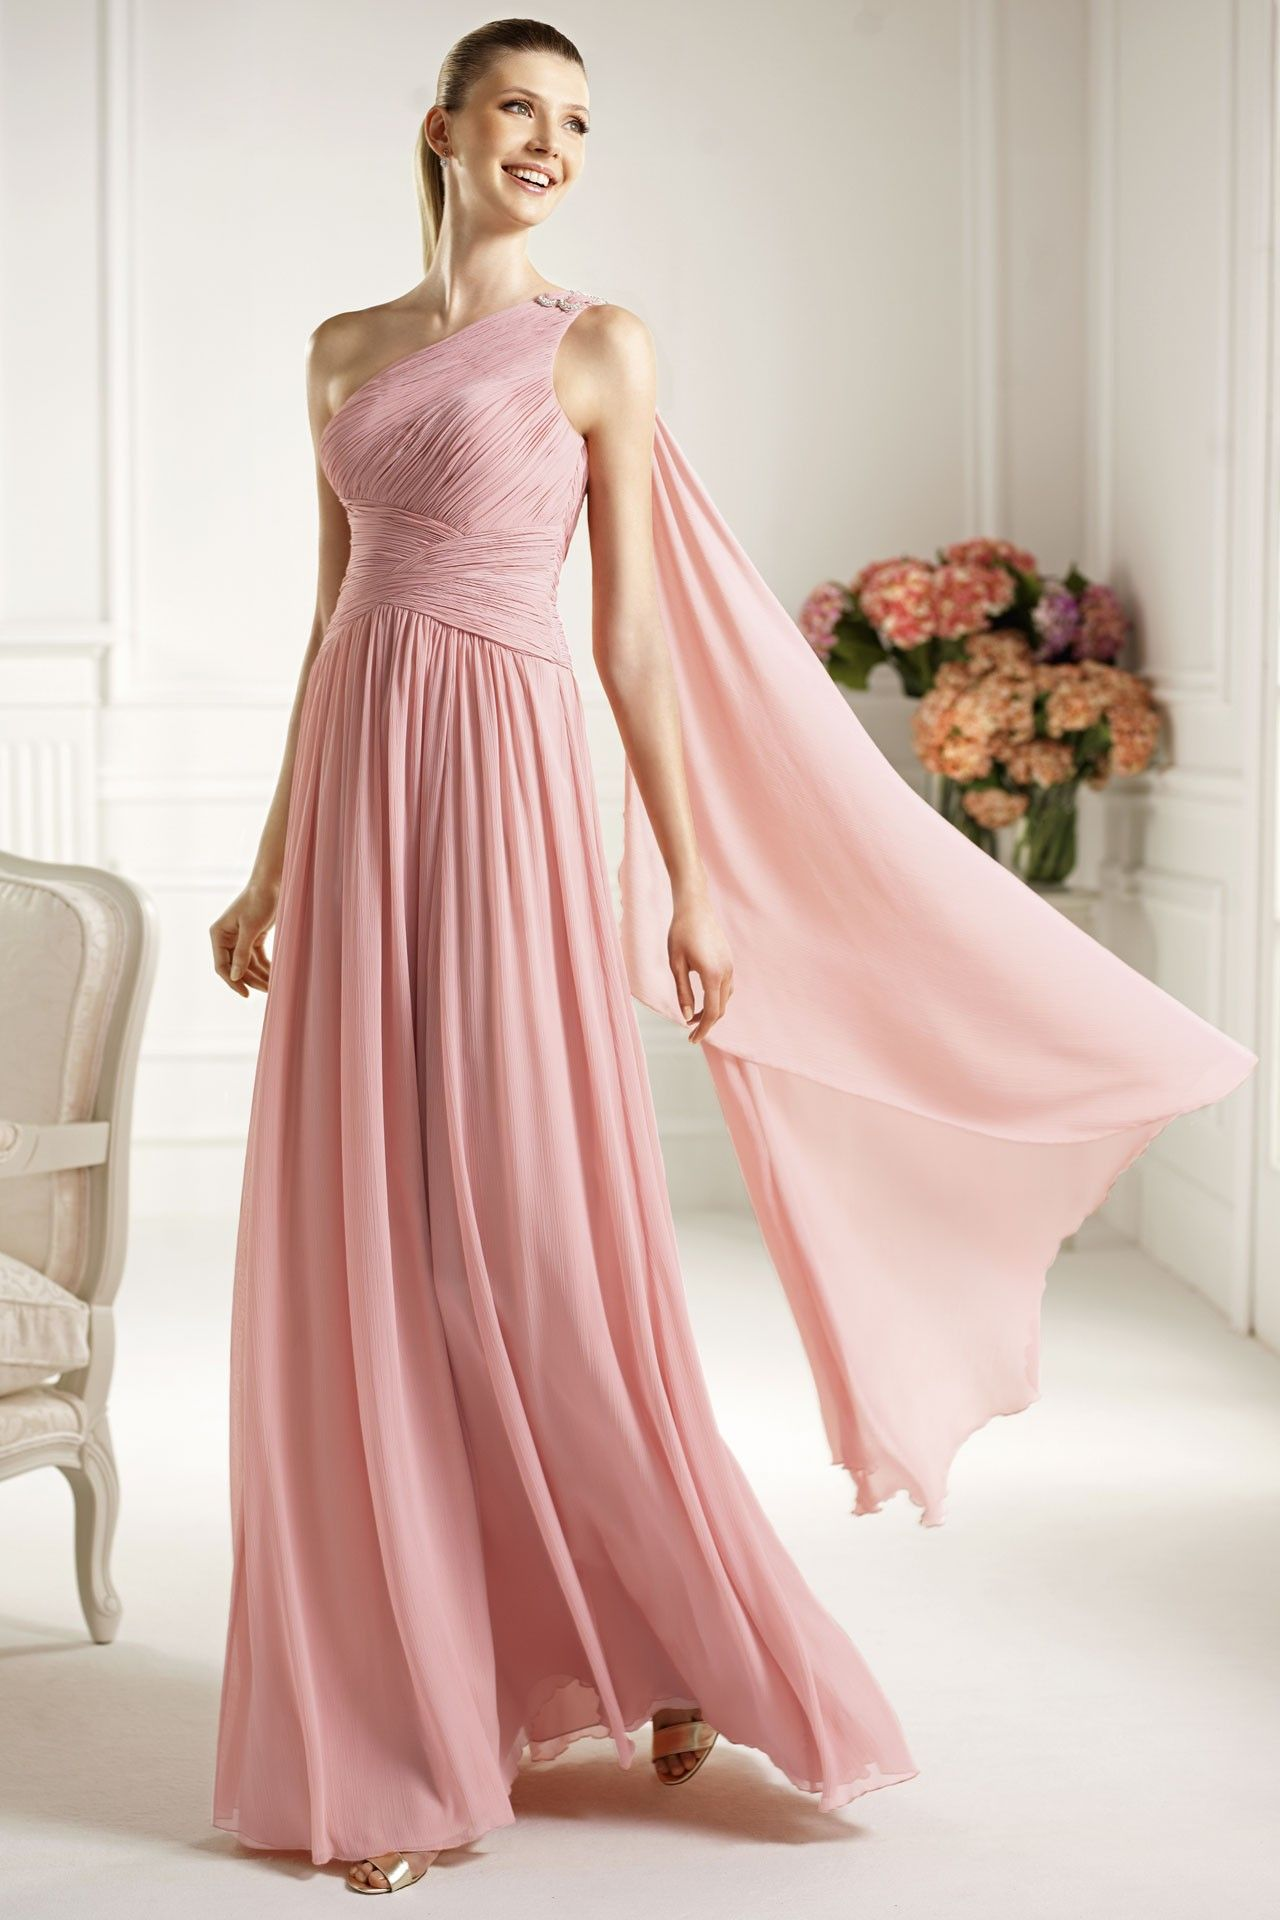 Bridesmaid dresses latest styles ideas bridesmagazine bridesmaid dresses latest styles ideas bridesmagazine ombrellifo Image collections